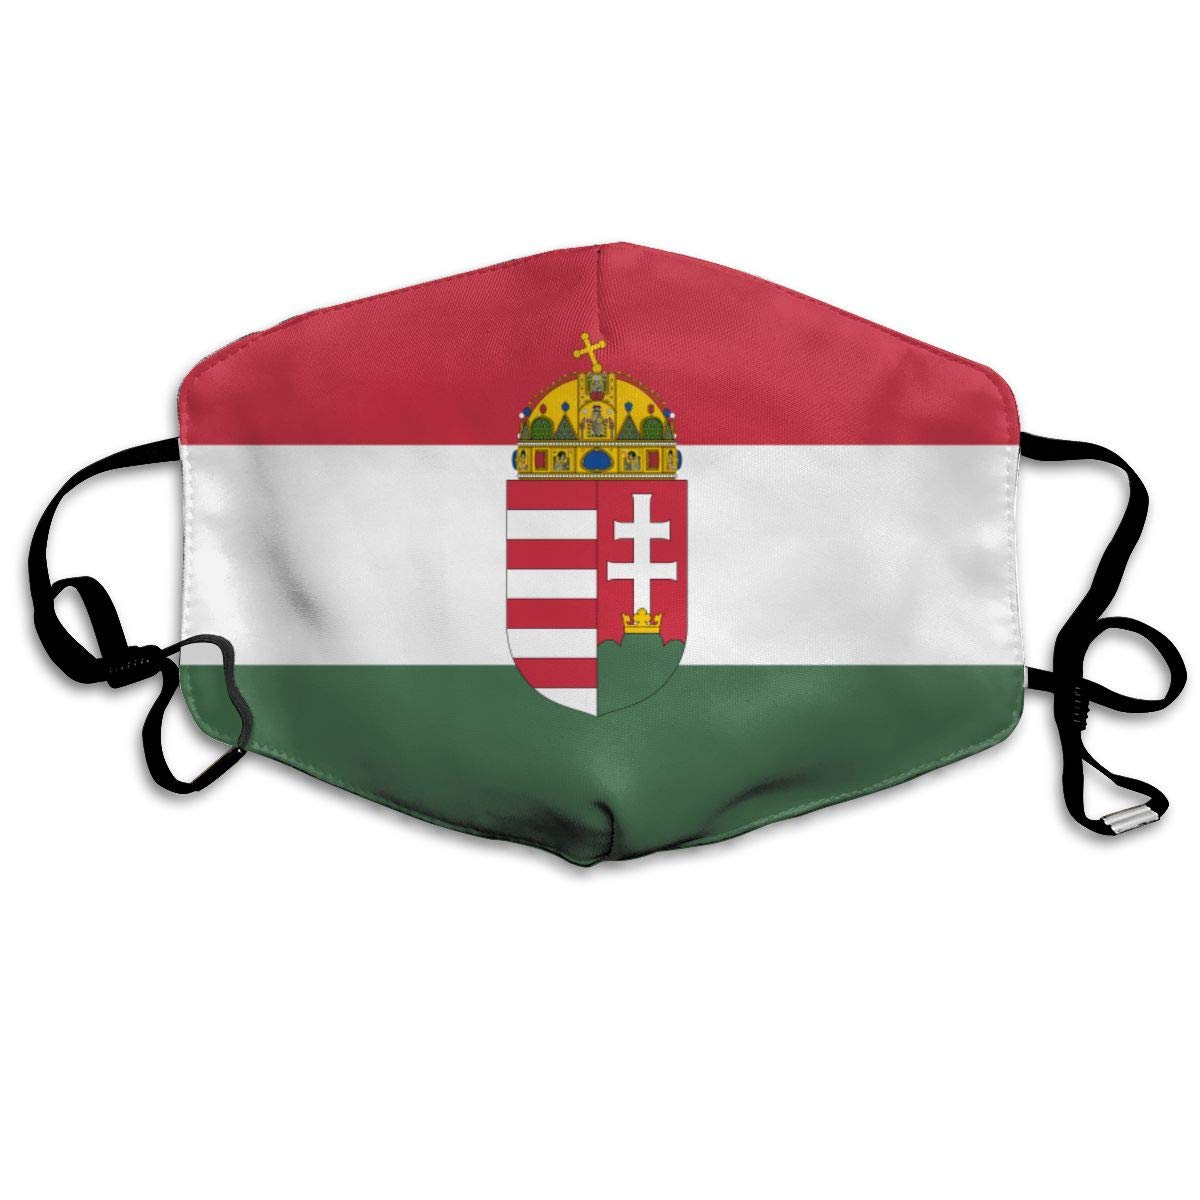 NiYoung Unisex Breathable Flag Of Hungary Mouth Mask, Adjustable Earloop   Anti Dust Pollution Face Mask For Running Cycling